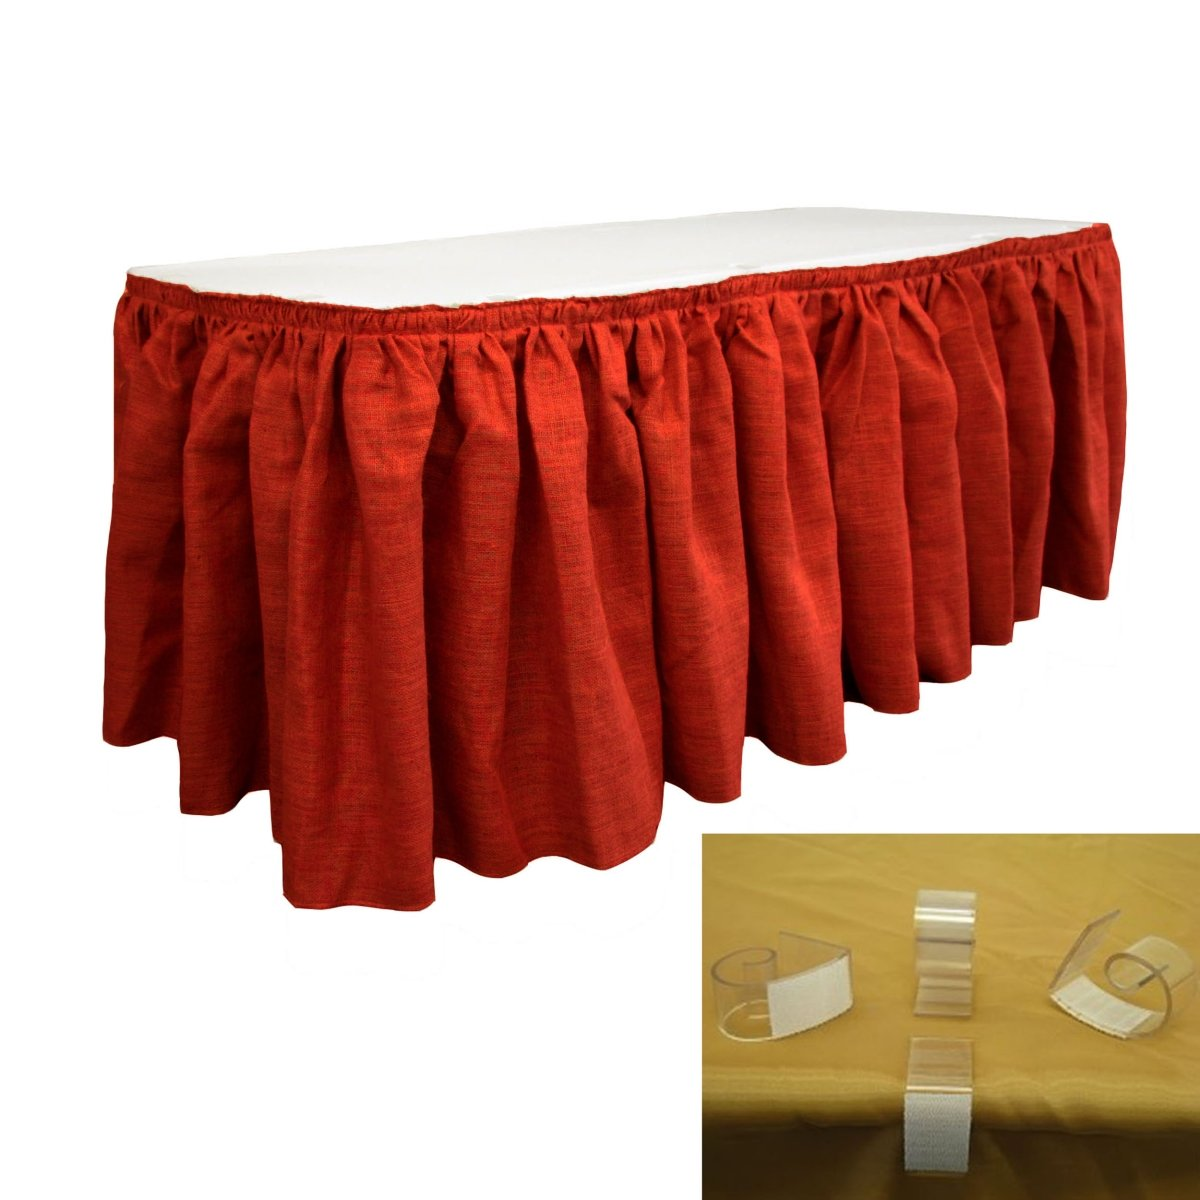 LA Linen SkirtBurlap14x29-10Lclips-Red Burlap Table Skirt with 10 L-Clips44; Red - 14 ft. x 29 in.